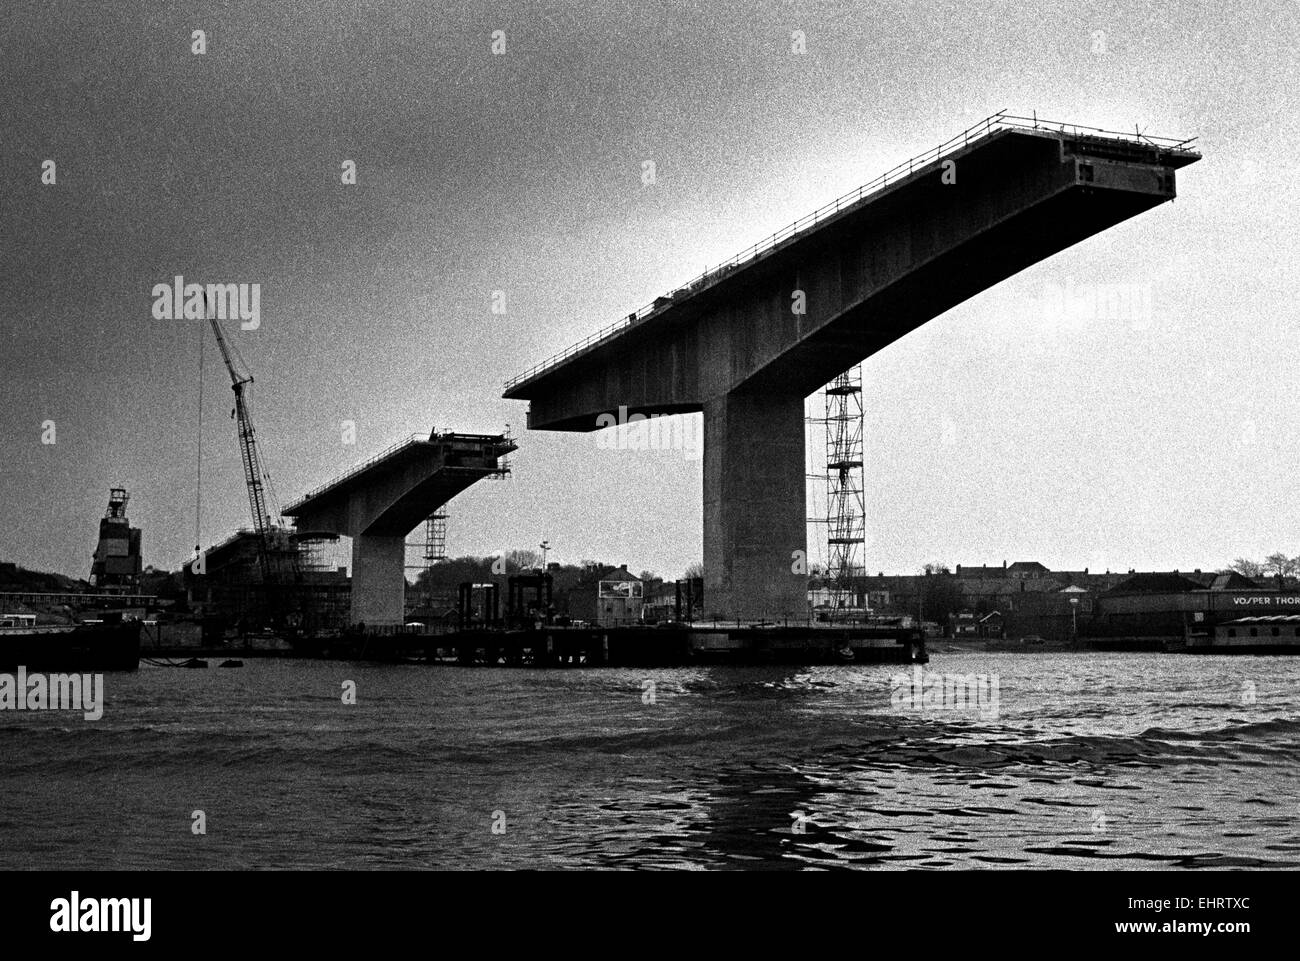 AJAXNETPHOTO - 26TH SEP, 1975 - SOUTHAMPTON,ENGLAND. - SPANNING THE RIVER - REINFORCD CONCRETE SPANS OF THE ITCHEN - Stock Image